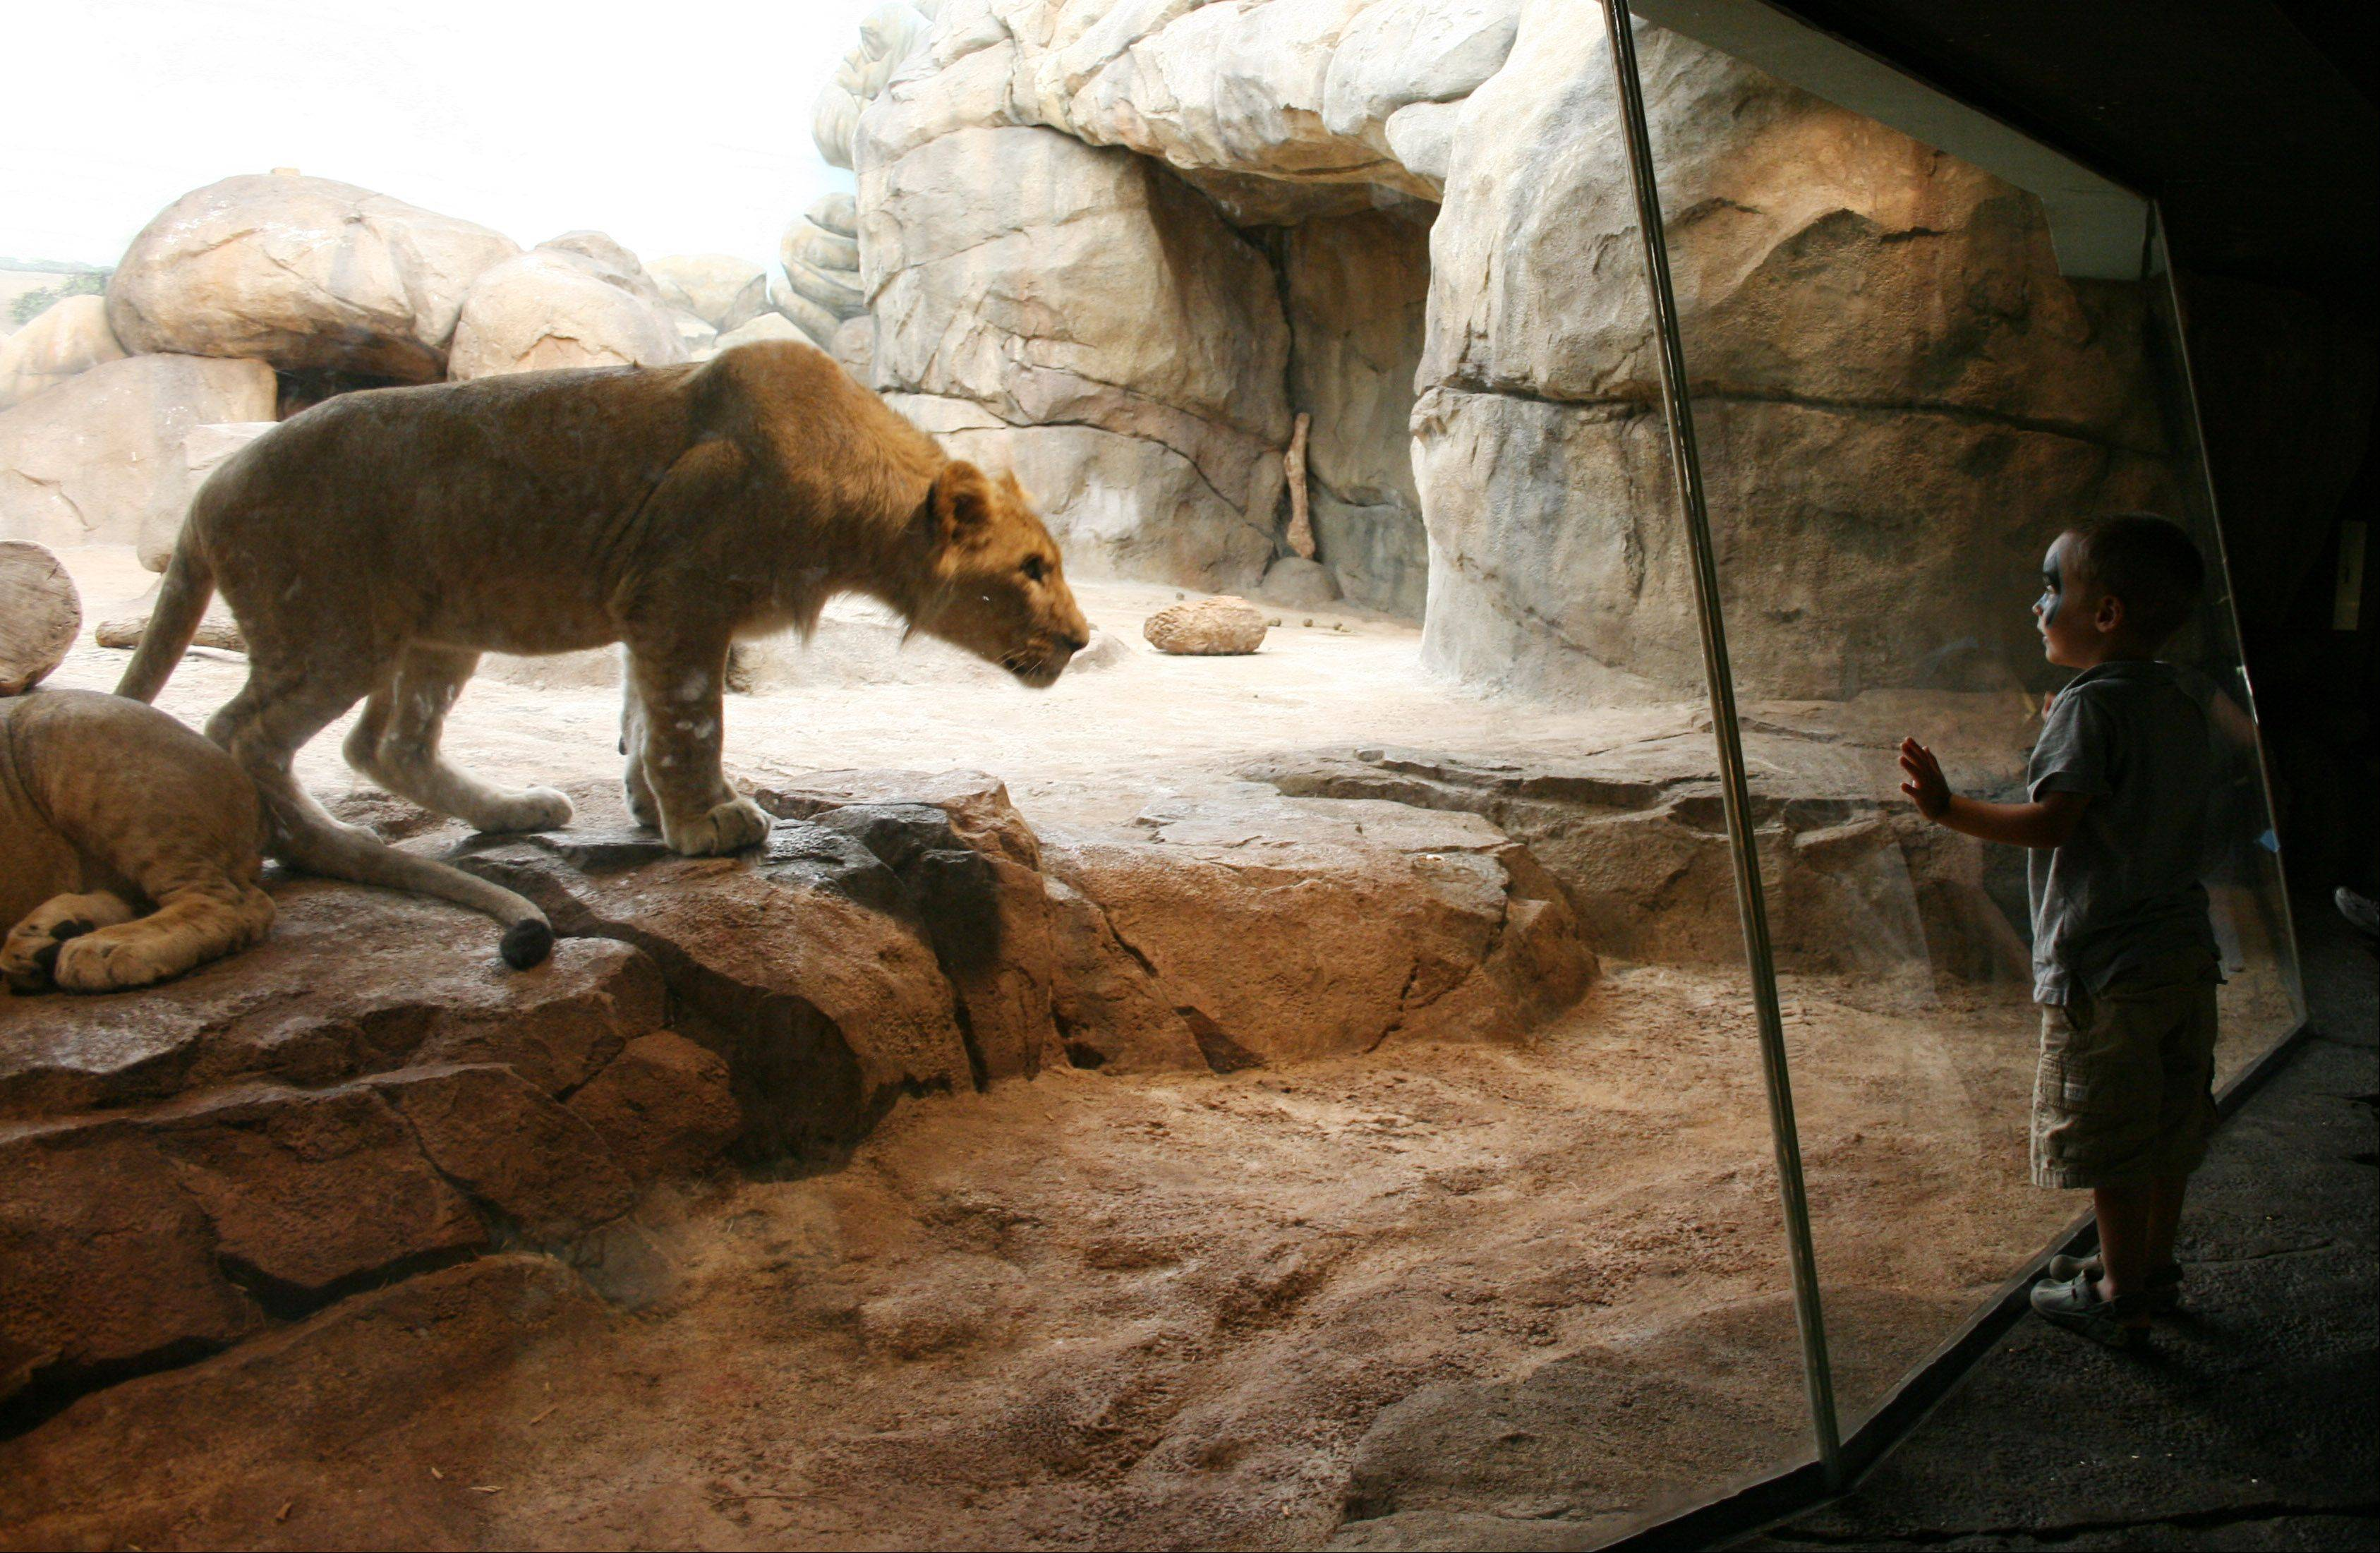 My daughter and I went to the Milwaukee Zoo last summer and saw the boy and lion in a staring contest.